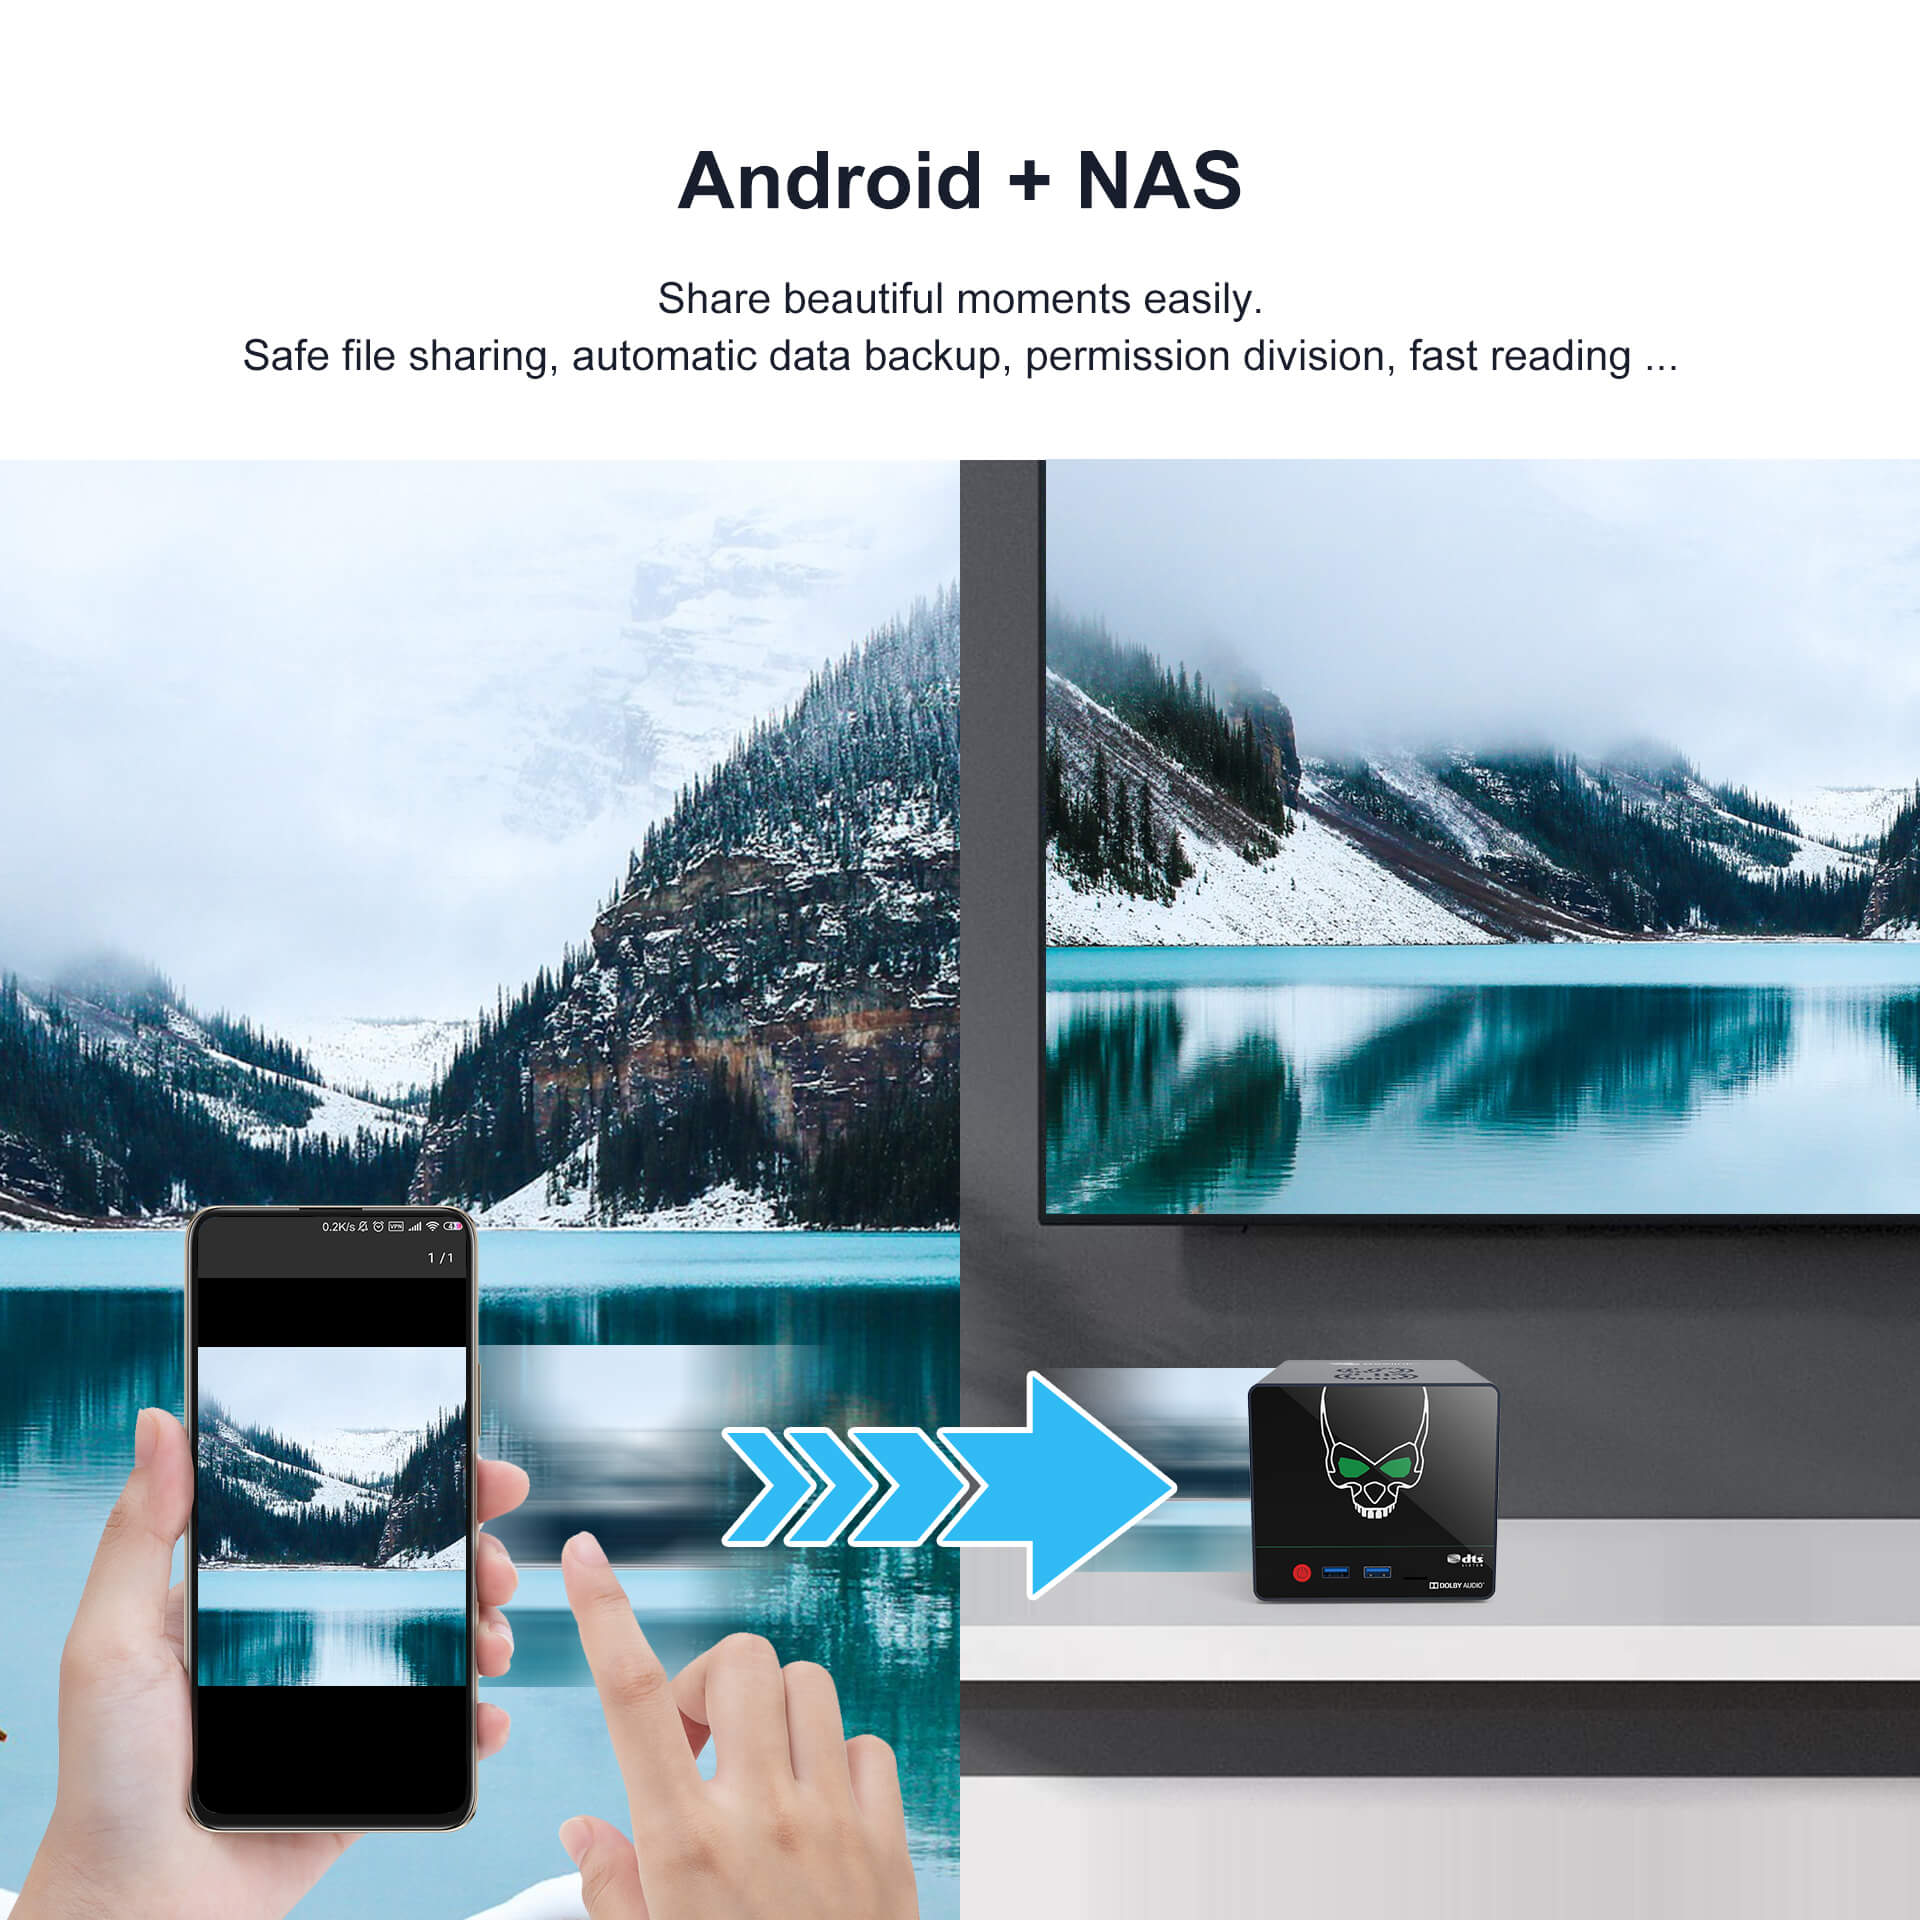 Beelink GS-King X S922X-H Android 9.0 Powerful TV Box 4/64G with NAS Dolby DTS HIFI 4K Support HDD Expansion 5